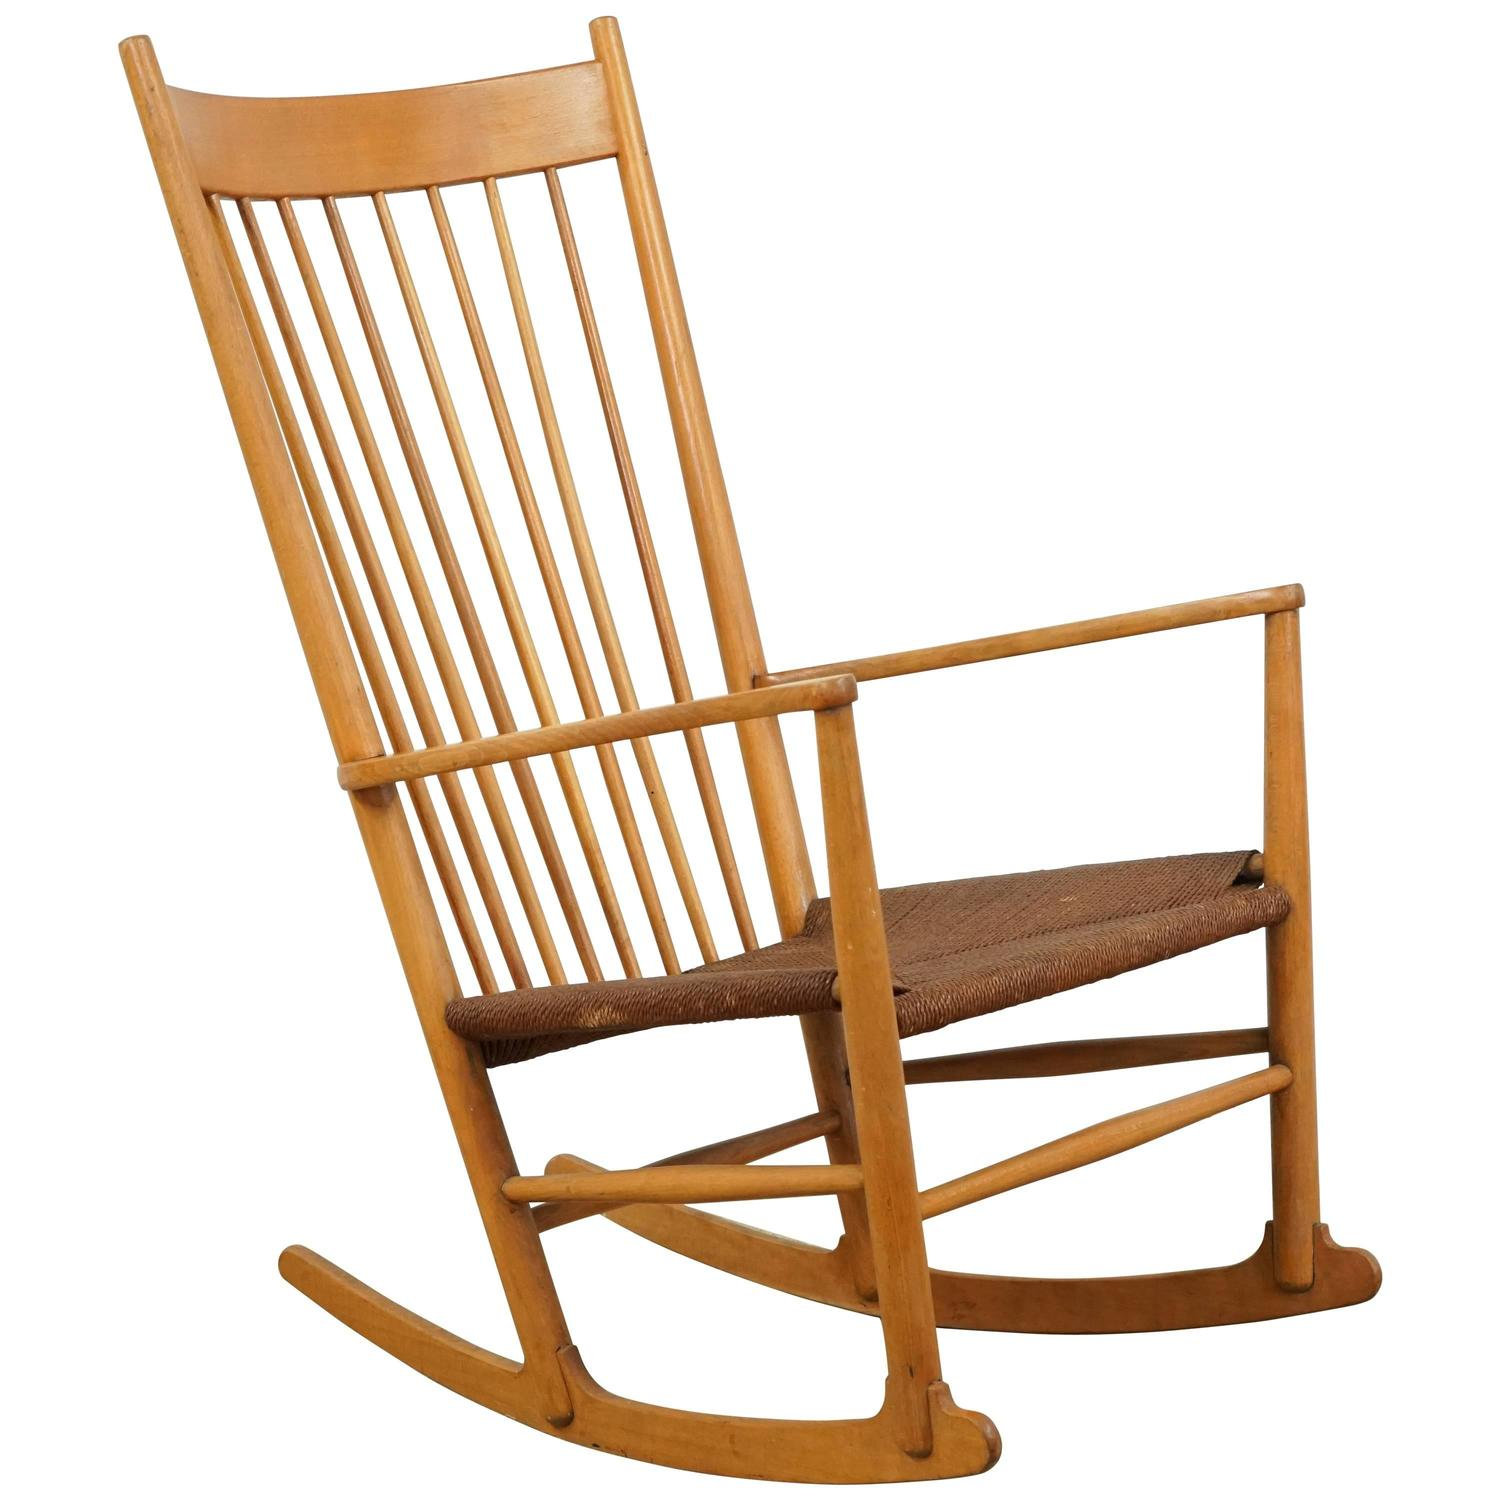 Danish Vintage Rocking Chair With Rope Seat At 1stdibs